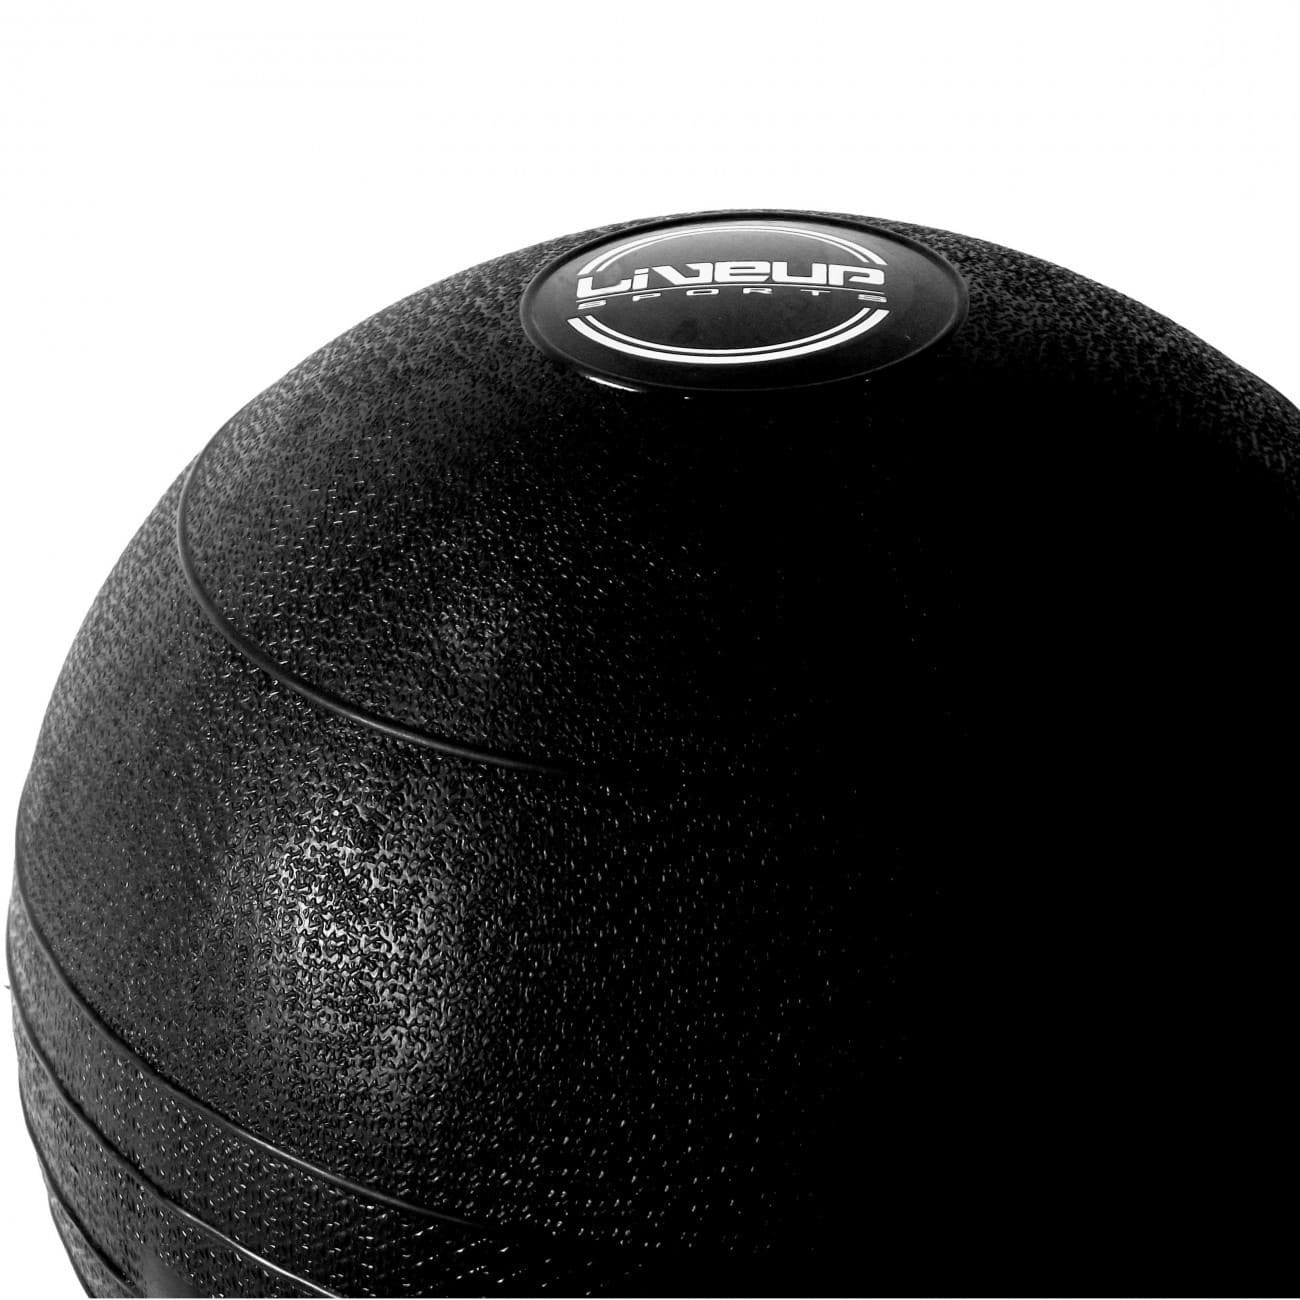 SLAM BALL D - 10KG - LIVEUP SPORTS